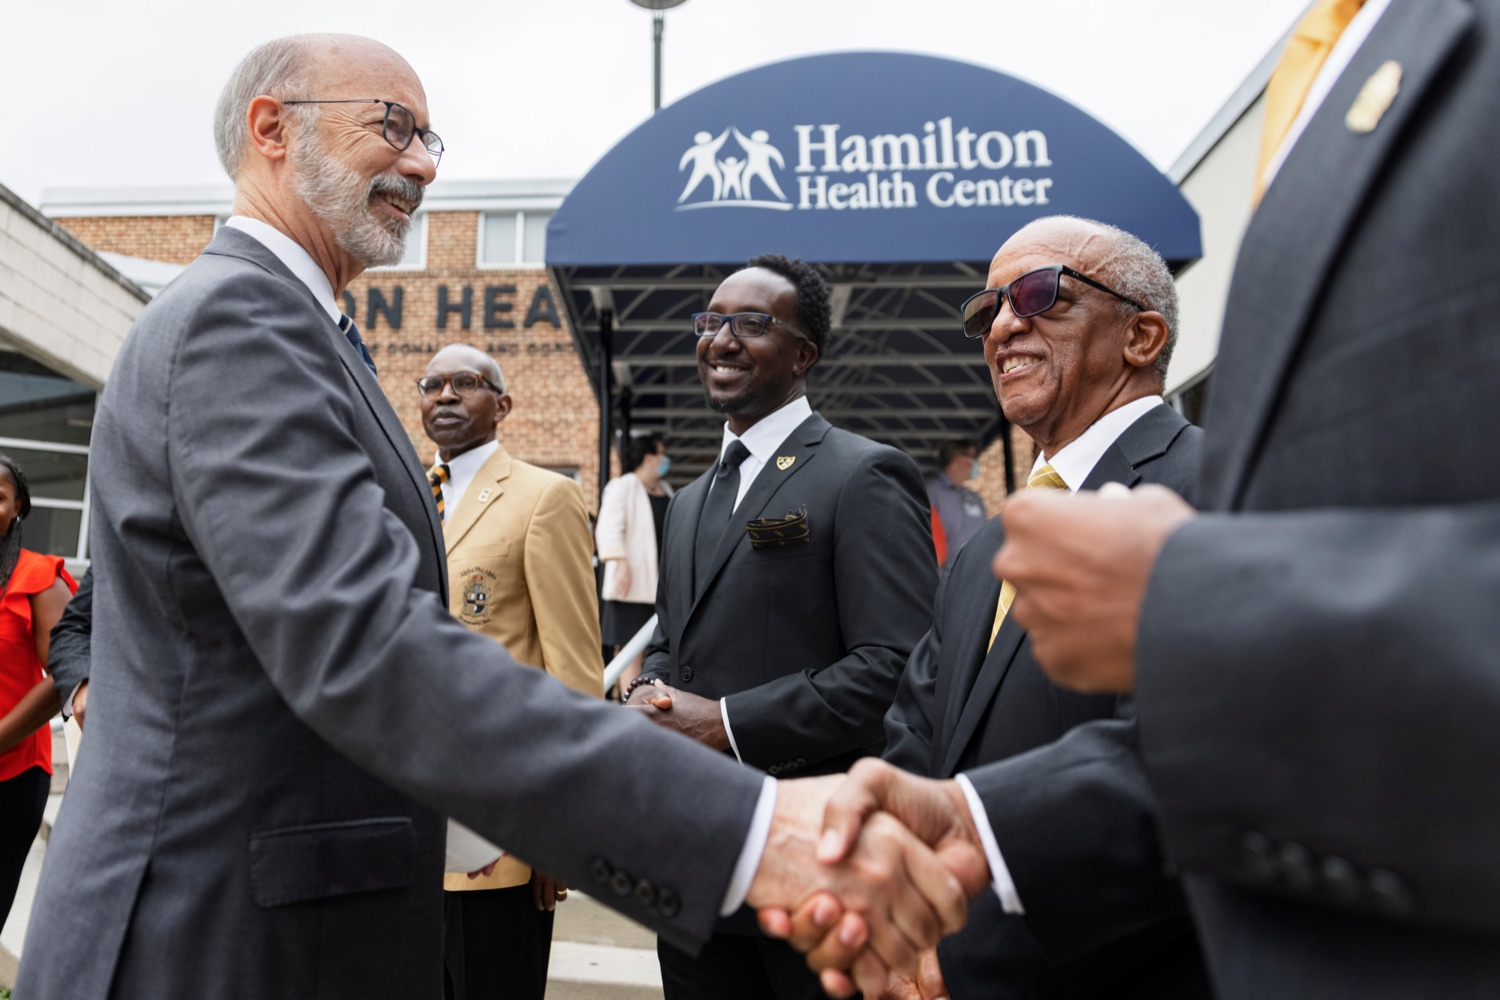 """<a href=""""https://filesource.wostreaming.net/commonwealthofpa/photo/20119_GOV_Vaccines_NK_008.jpg"""" target=""""_blank"""">⇣Download Photo<br></a>Governor Tom Wolf shakes hands with members of Zeta Theta Lambda Chapter of Alpha Phi Alpha fraternity, from left; Kenneth L Mickens, Dr. Cedric Harris, and Freddie Player, during a press conference, which encouraged eligible Pennsylvanians who are not yet vaccinated to take advantage of their upcoming community COVID-19 vaccine clinic in partnership with the Zeta Theta Lambda Chapter of Alpha Phi Alpha fraternity, outside Hamilton Health Center in Harrisburg on Wednesday, October 6, 2021. The clinic will run on Saturday, October 9, COVID-19 vaccinations will be offered from 10am  2pm at Hamilton Health Center, 100 S. 17th St., Harrisburg, PA 17104."""